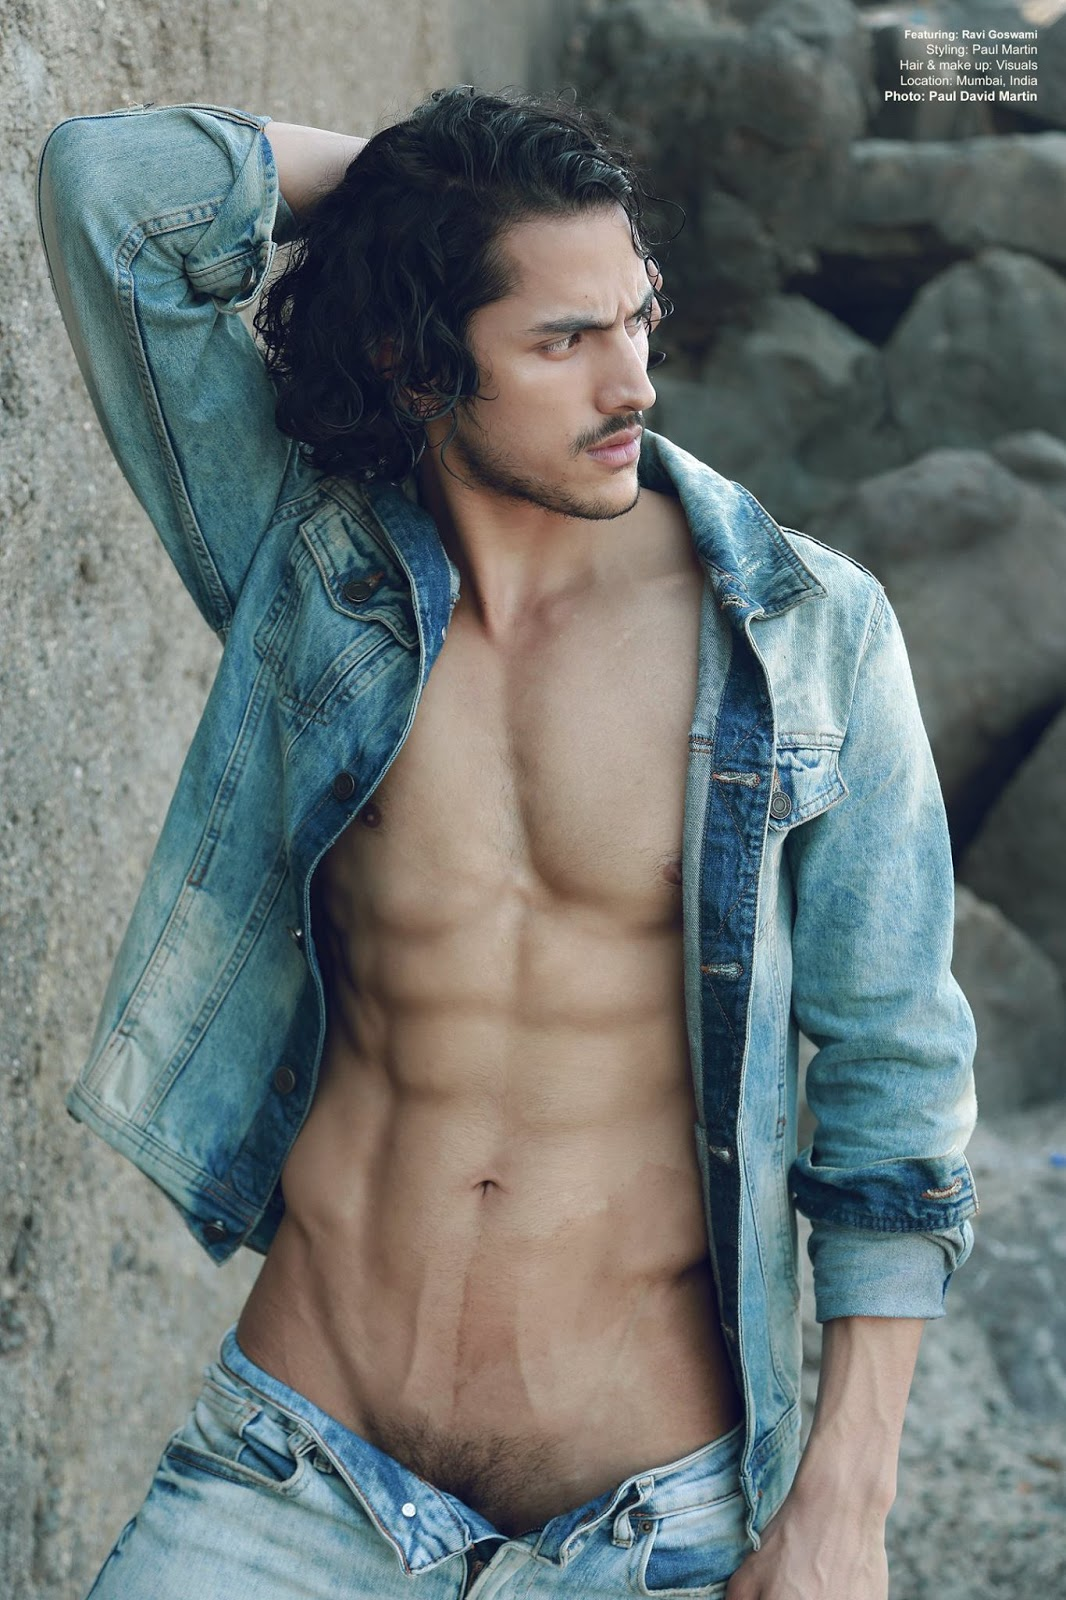 Shirtless Bollywood Men Indian Male Models And Their Pubes-1580